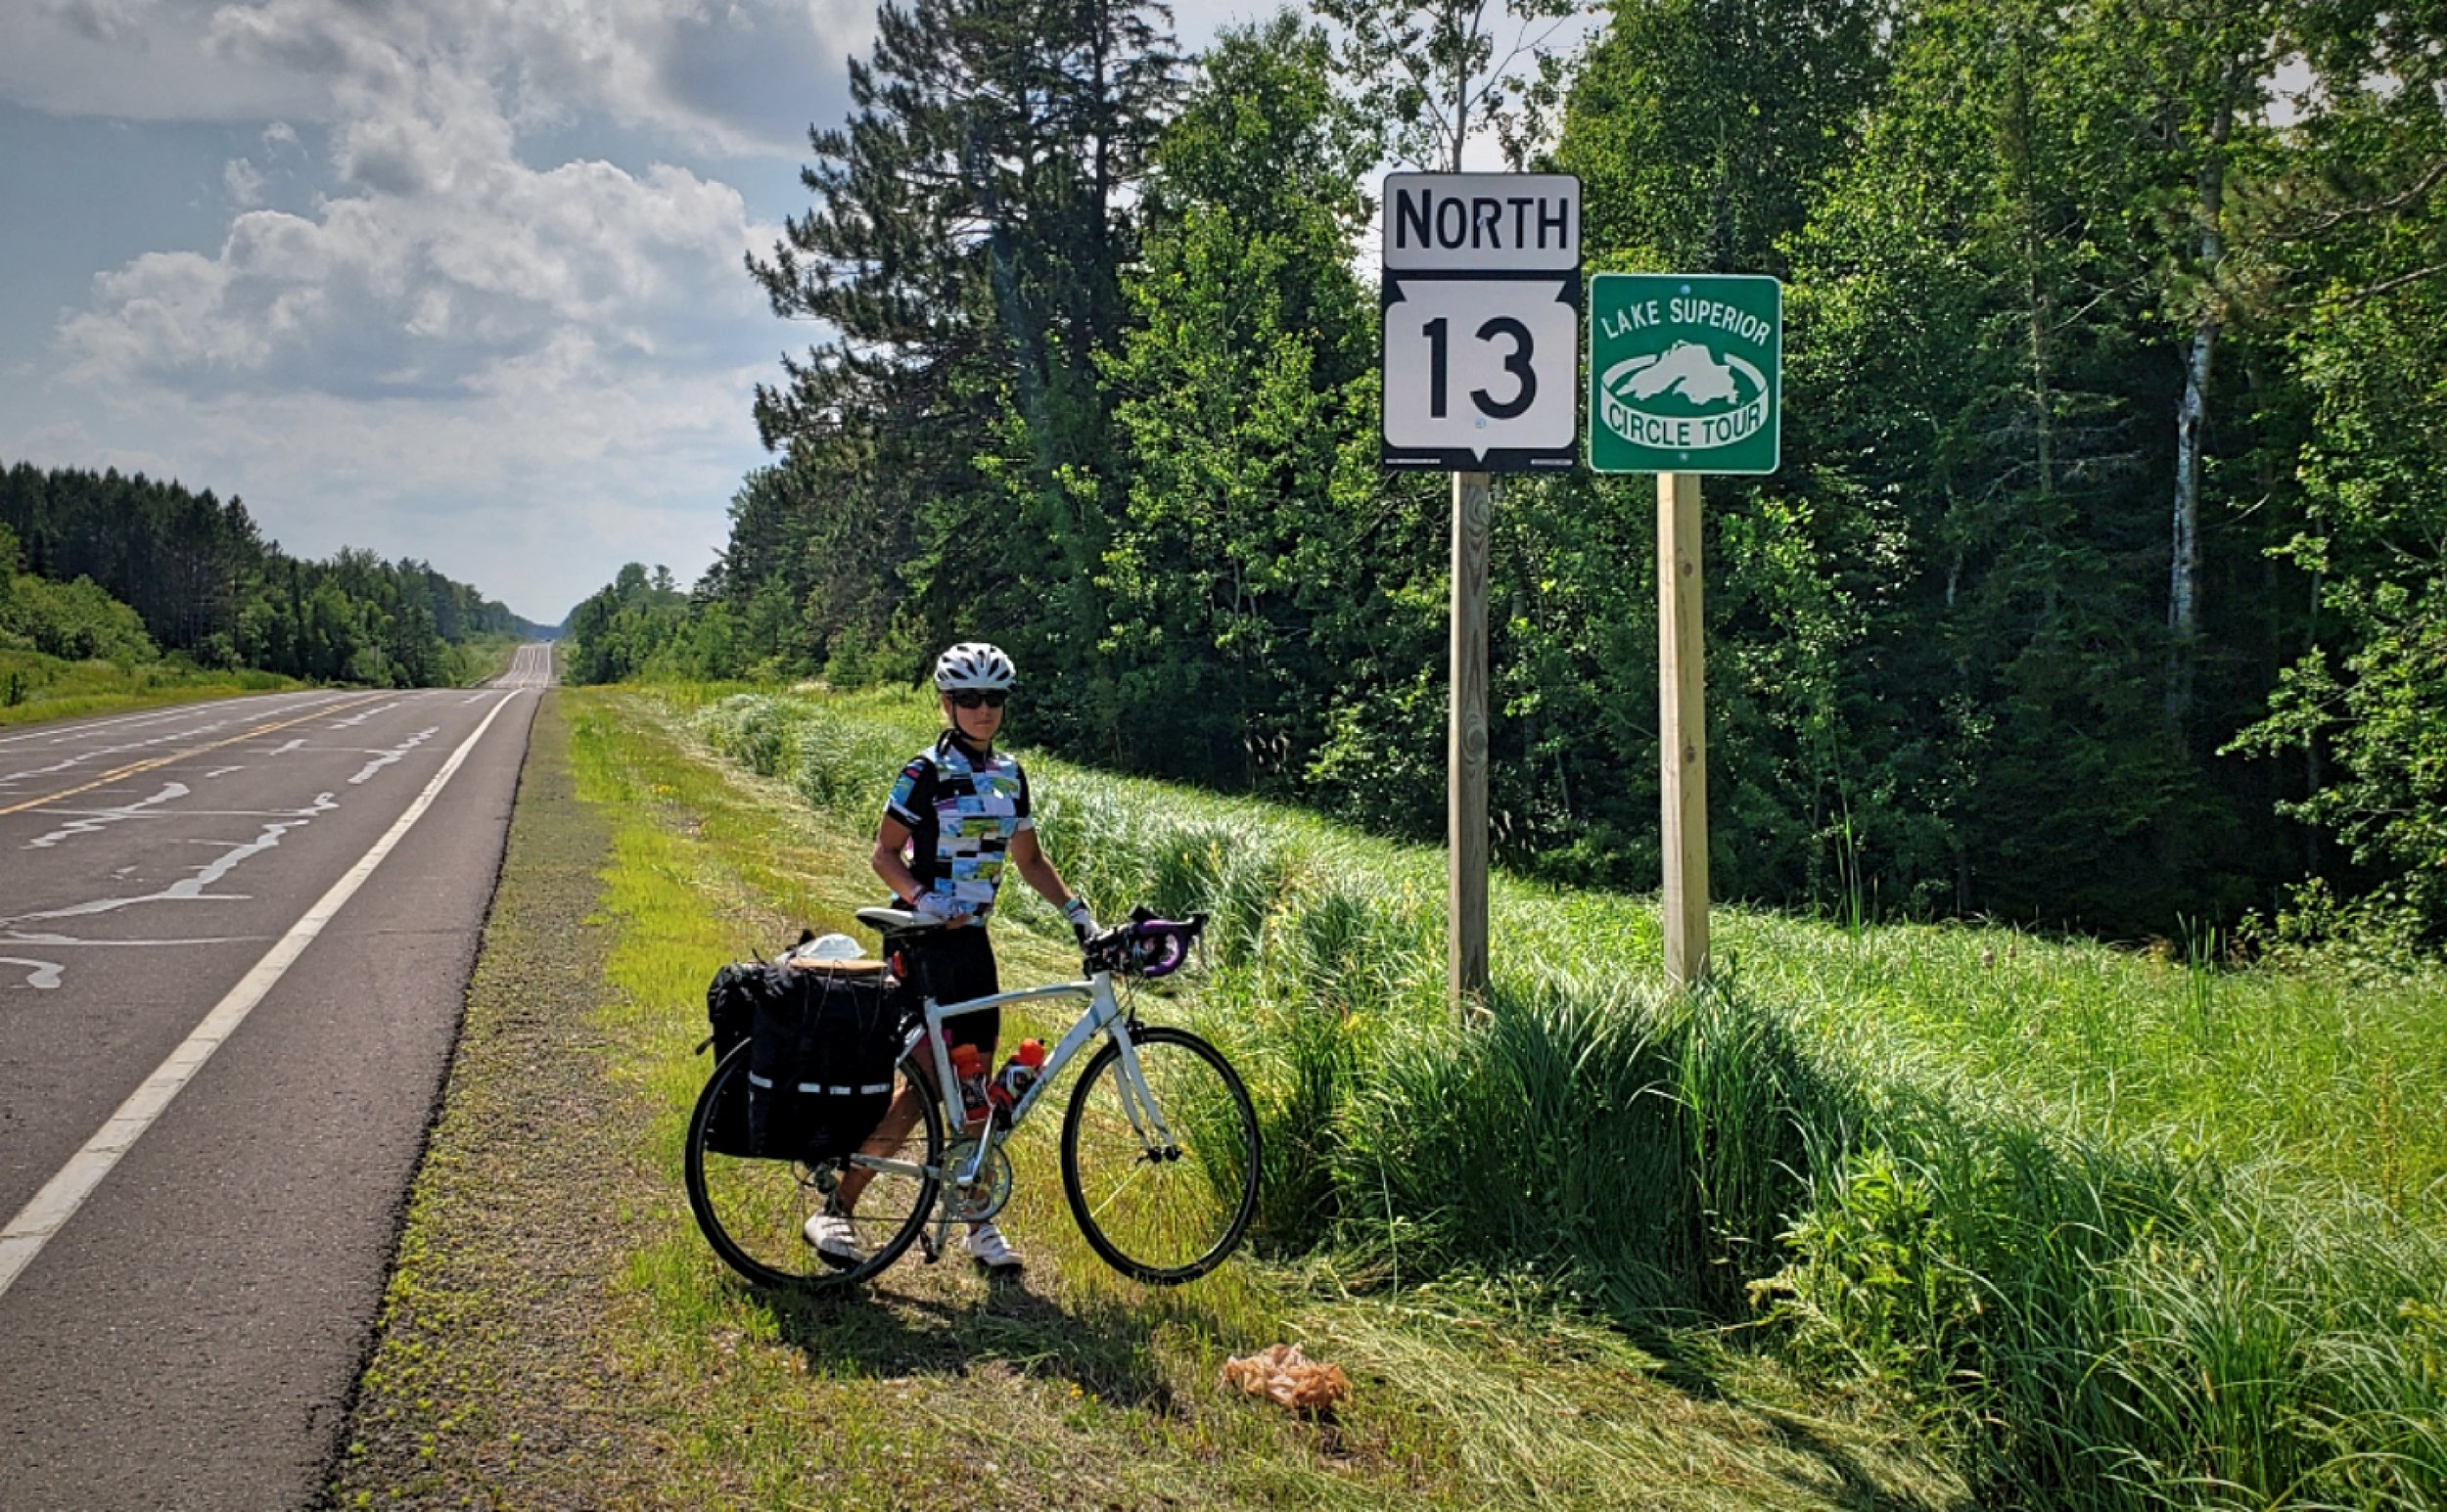 We followed these Lake Superior Circle Tour signs all the way around Lake Superior!